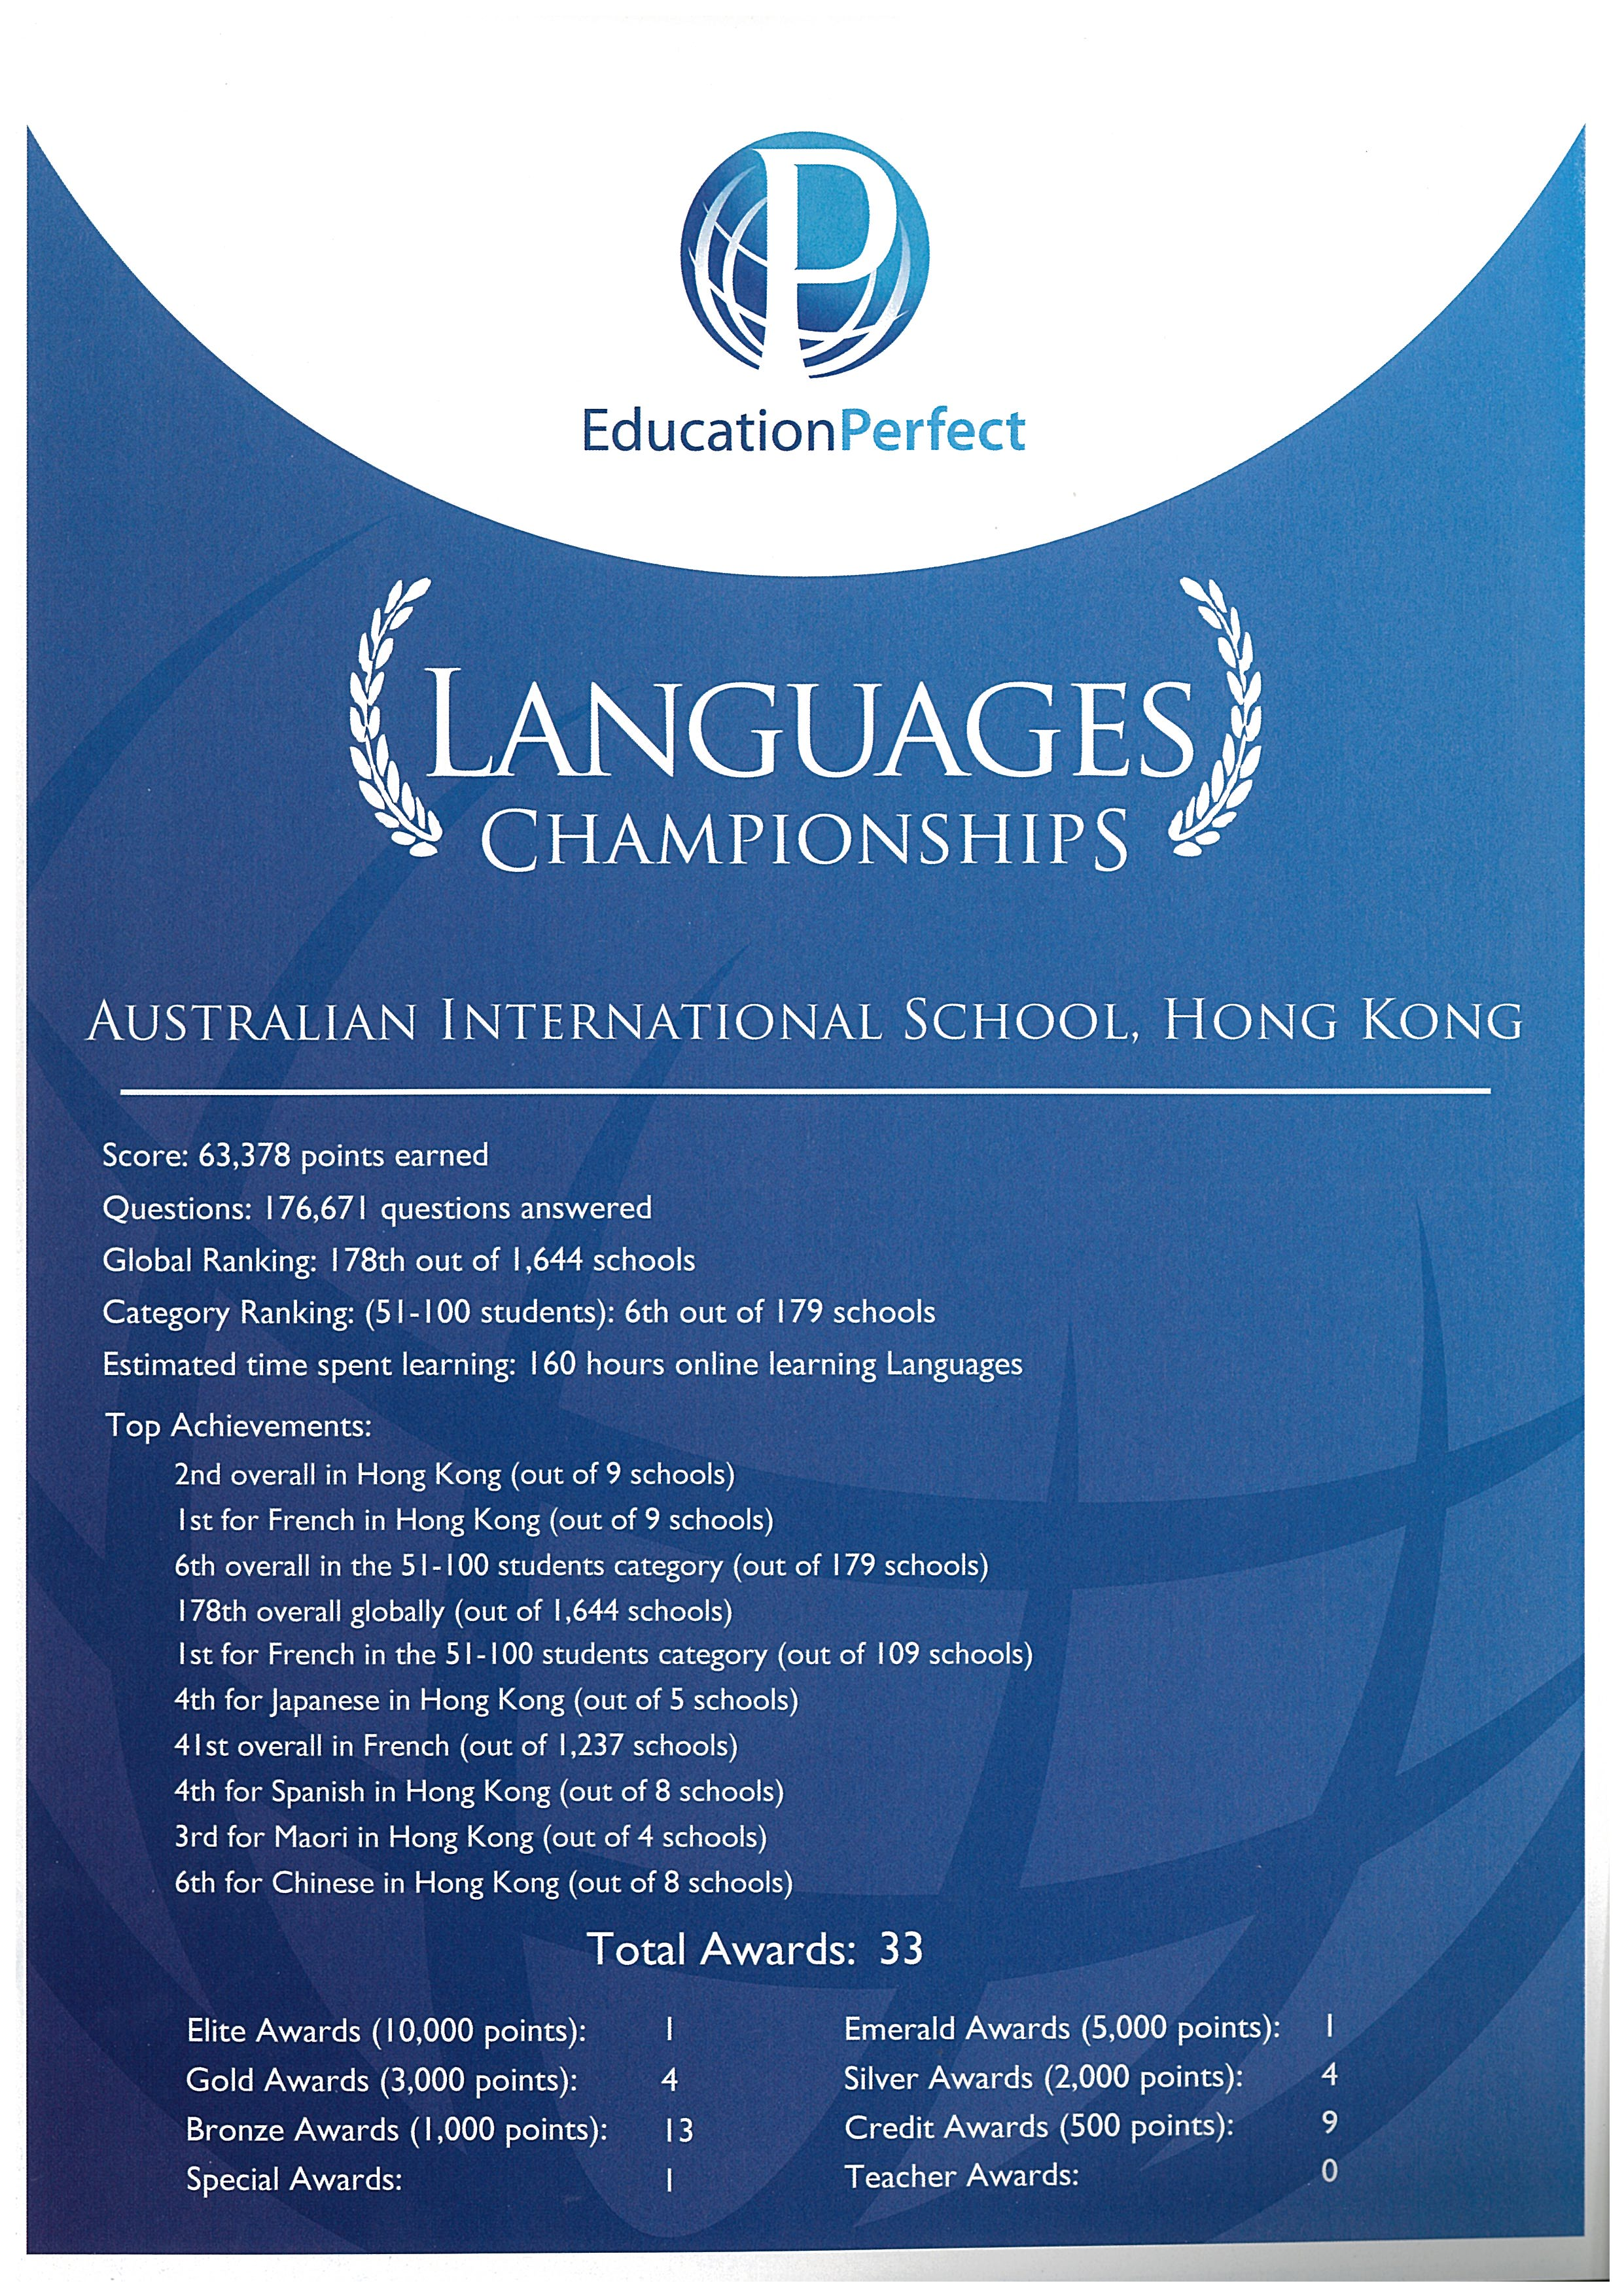 Language Perfect Championships Competition Awards 2019